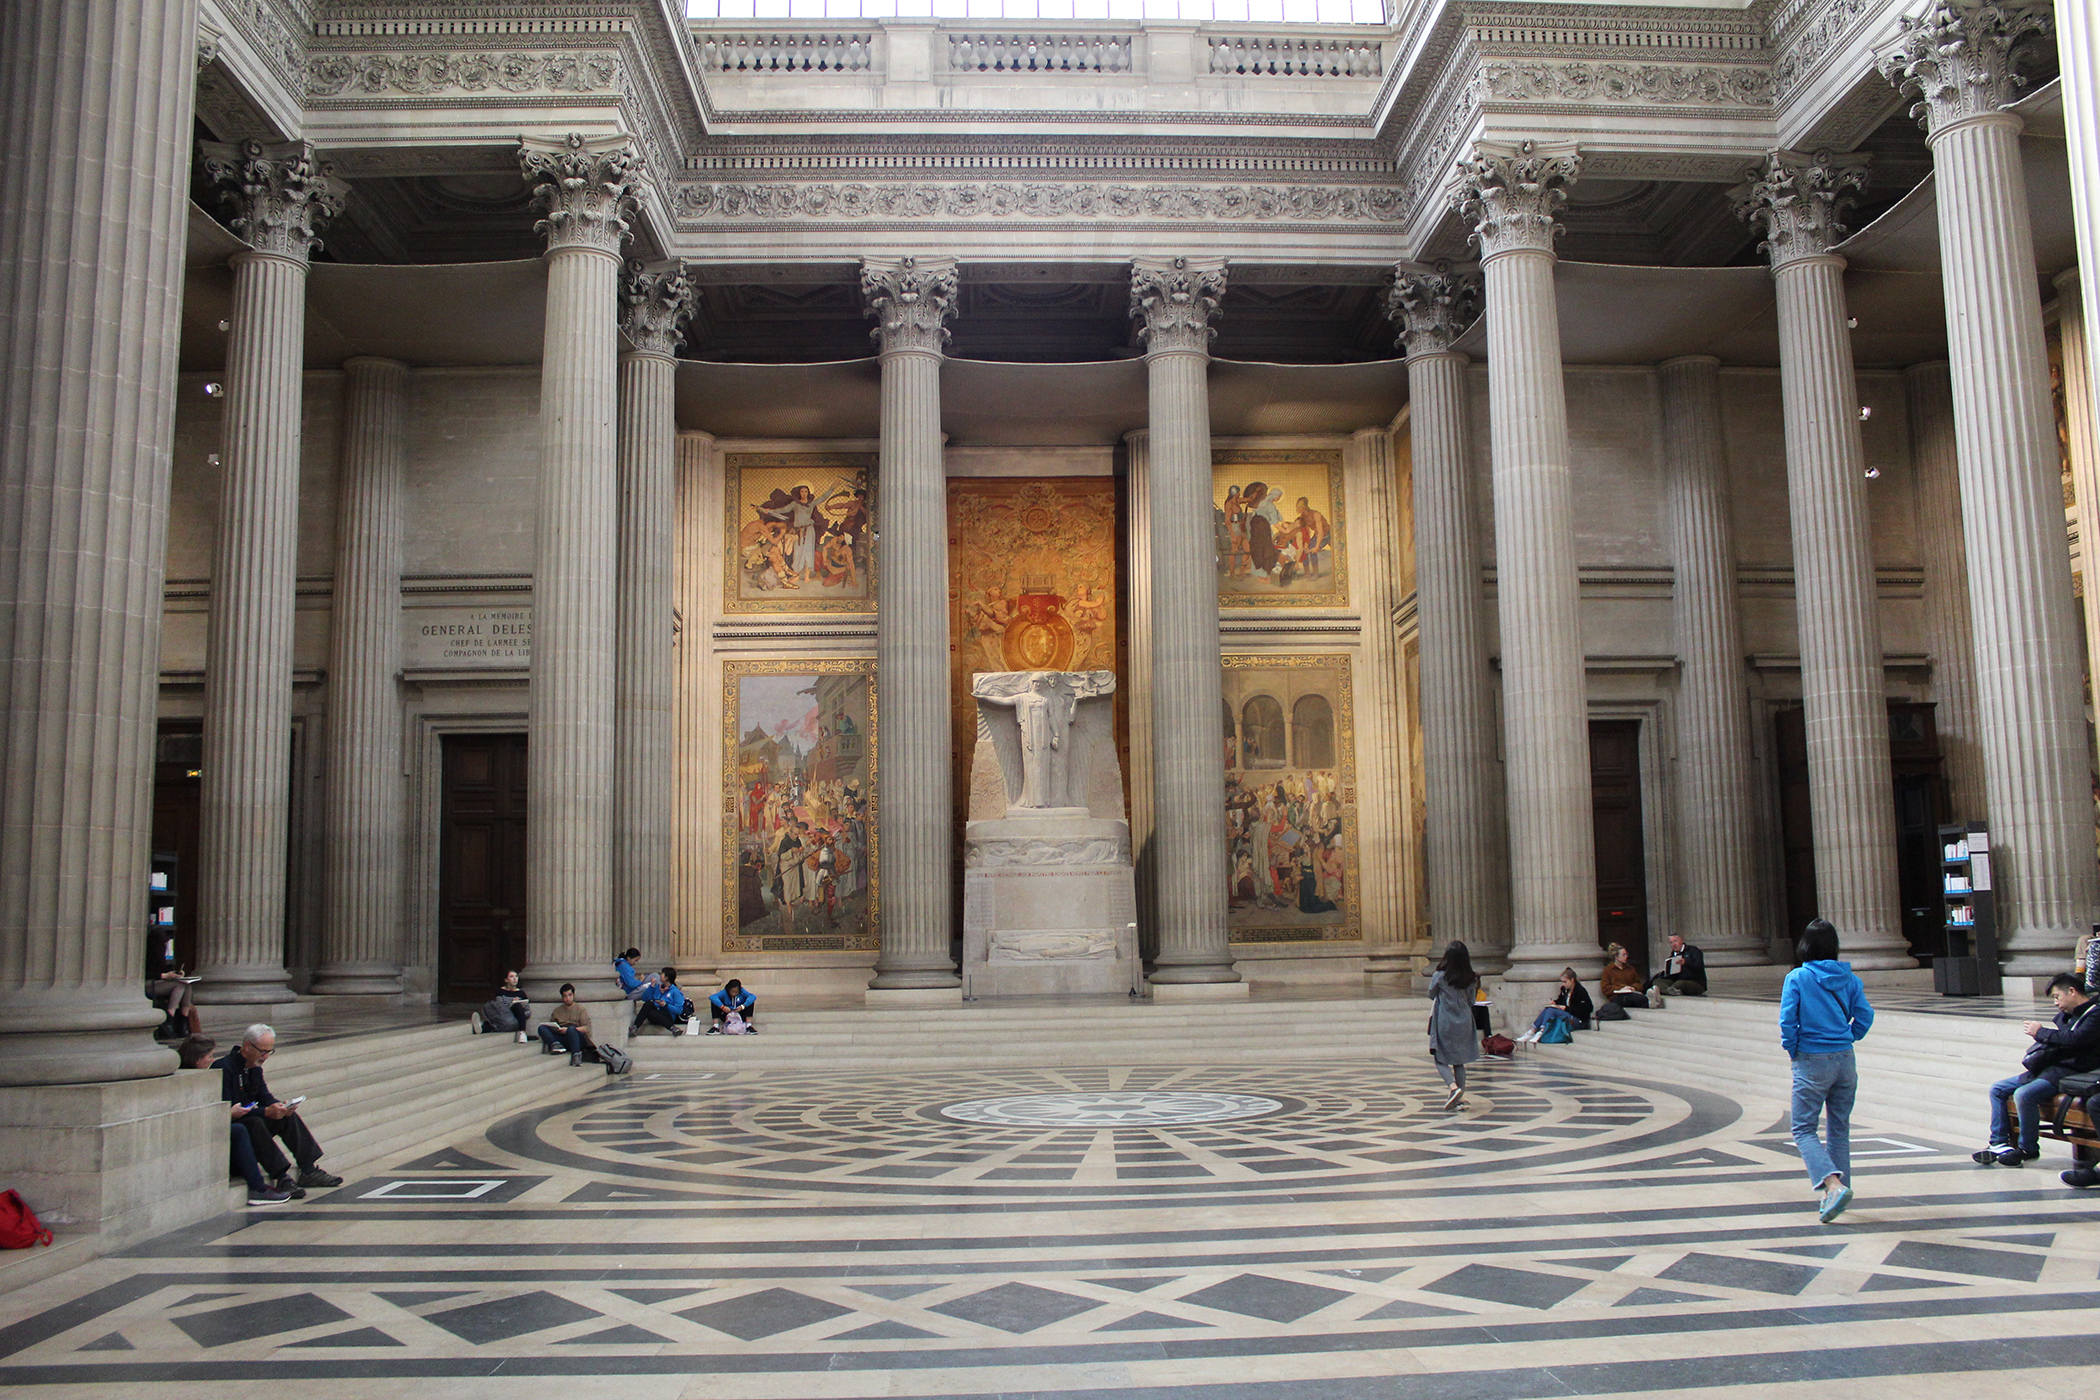 People walking, standing, and sitting in a open central area with stairs, columns, and a statue.